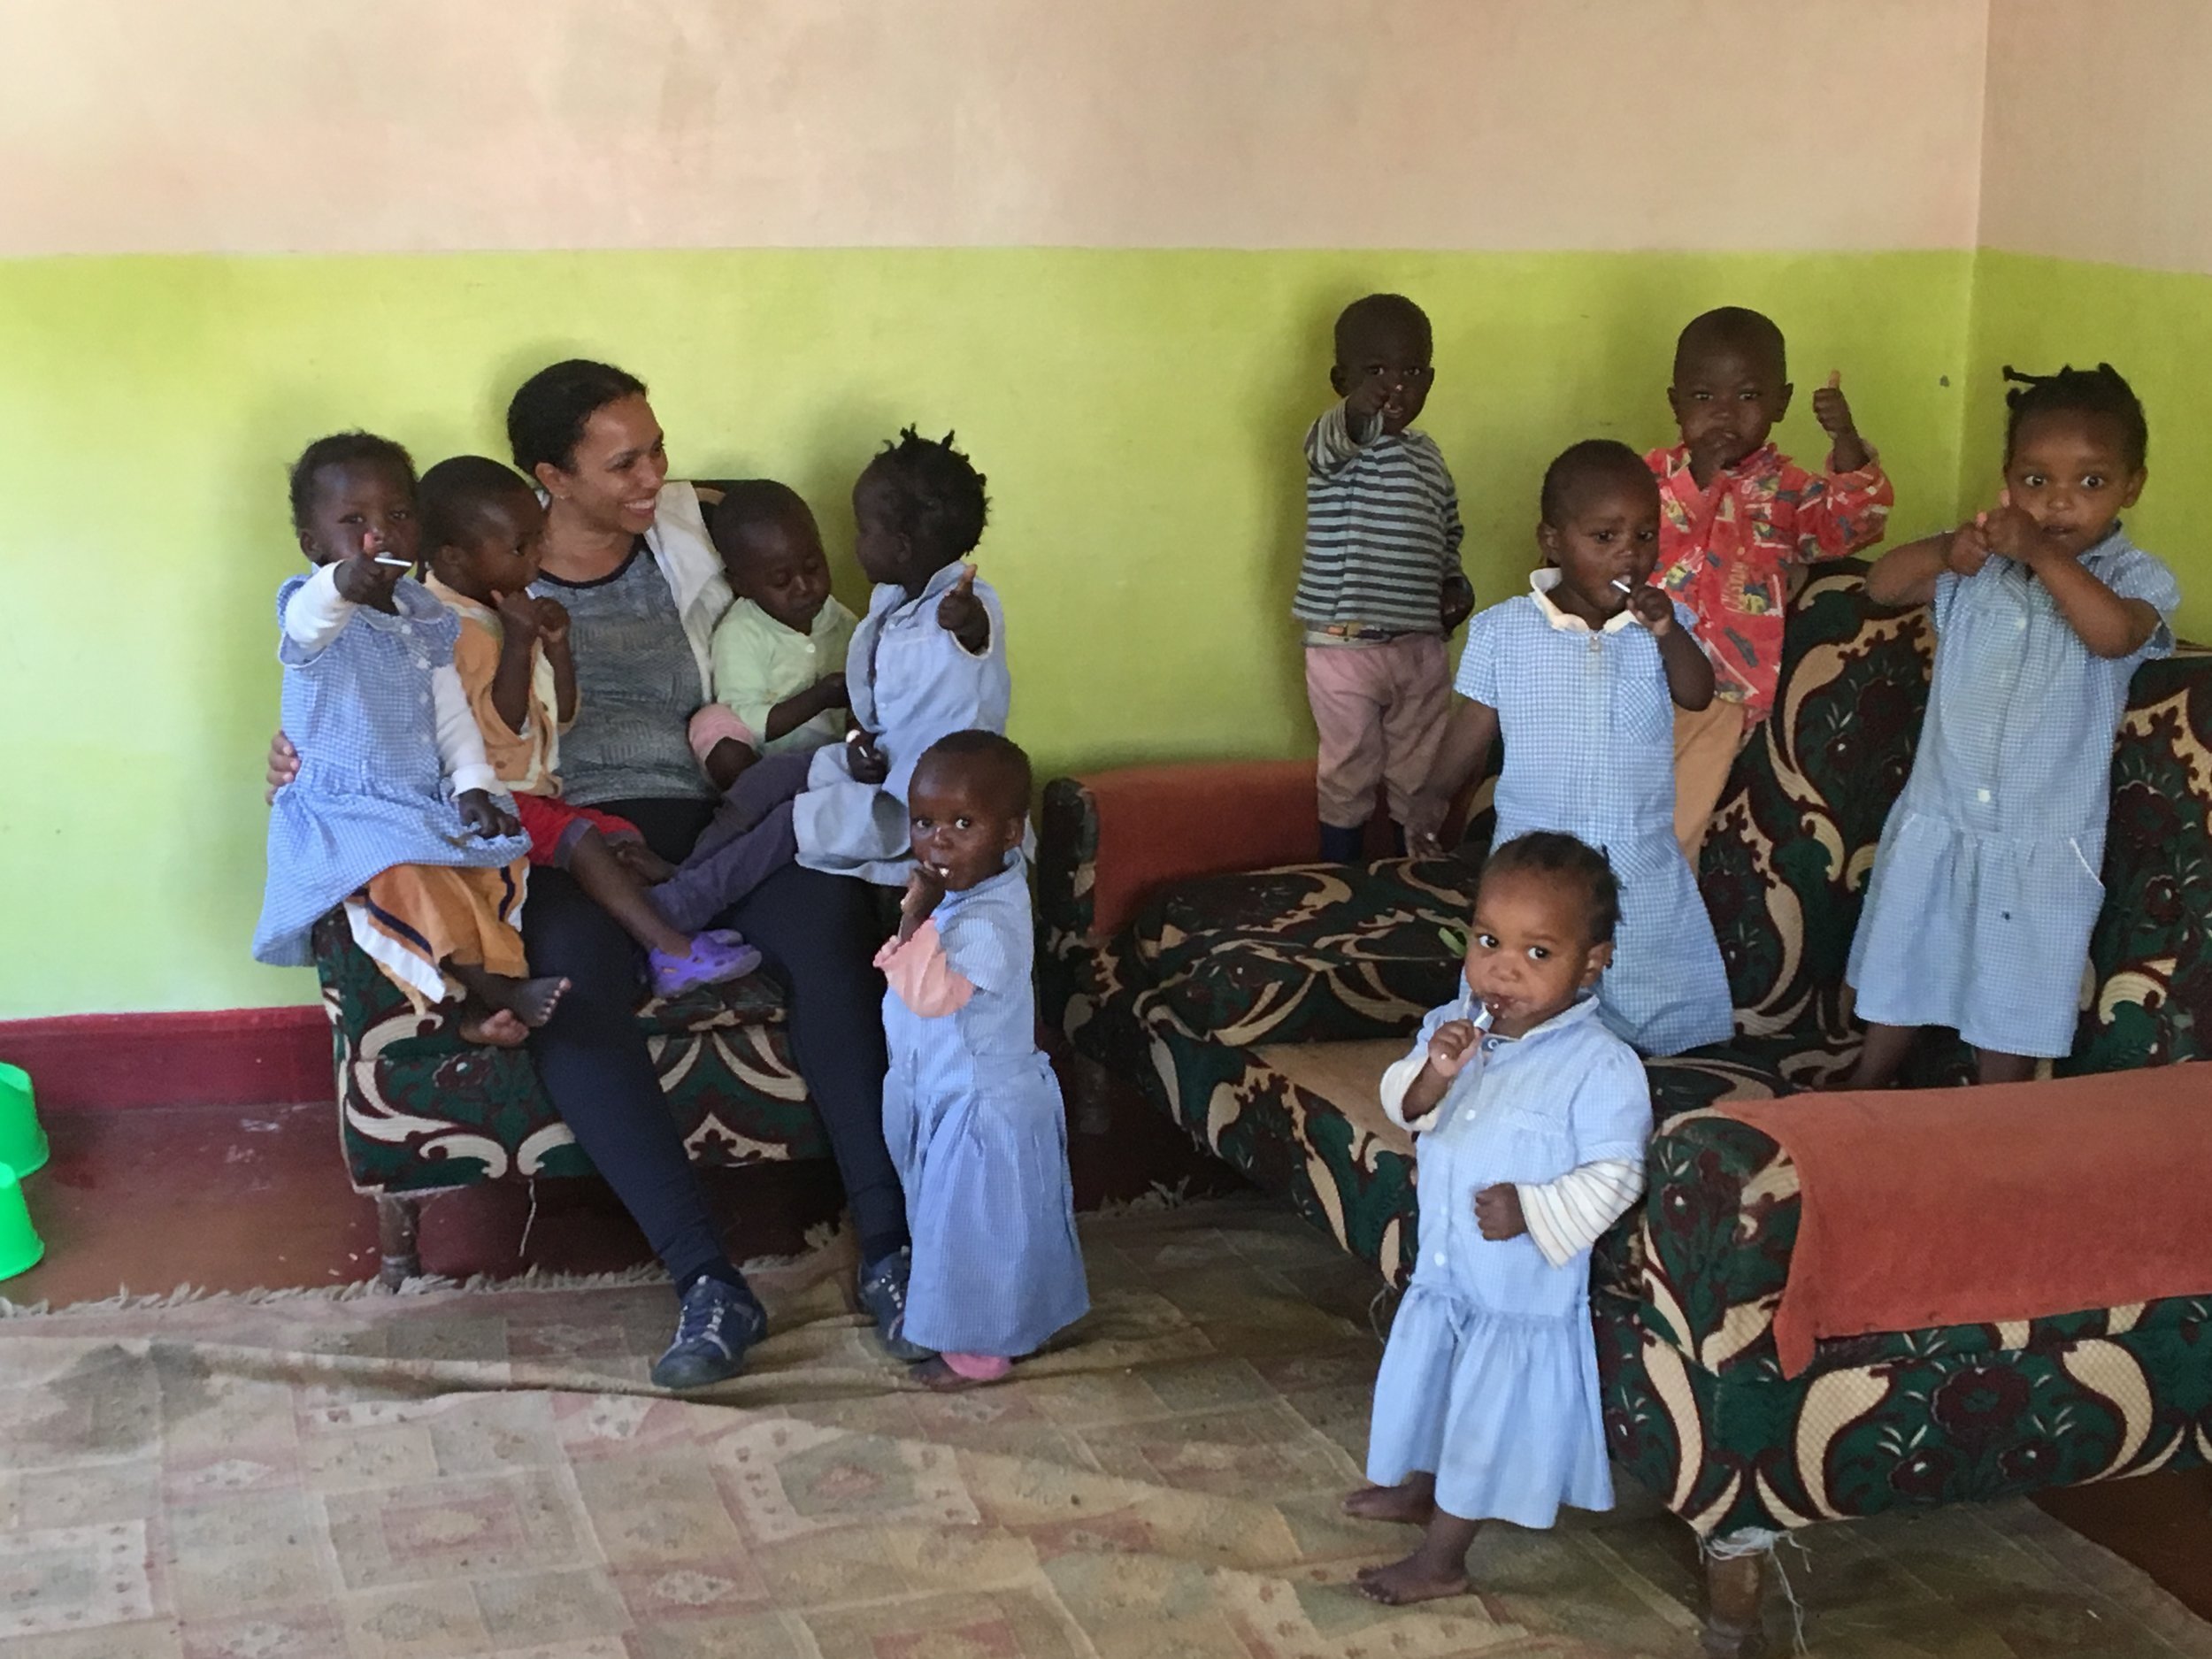 Working with 1-2 years olds in Kenyan orphanage